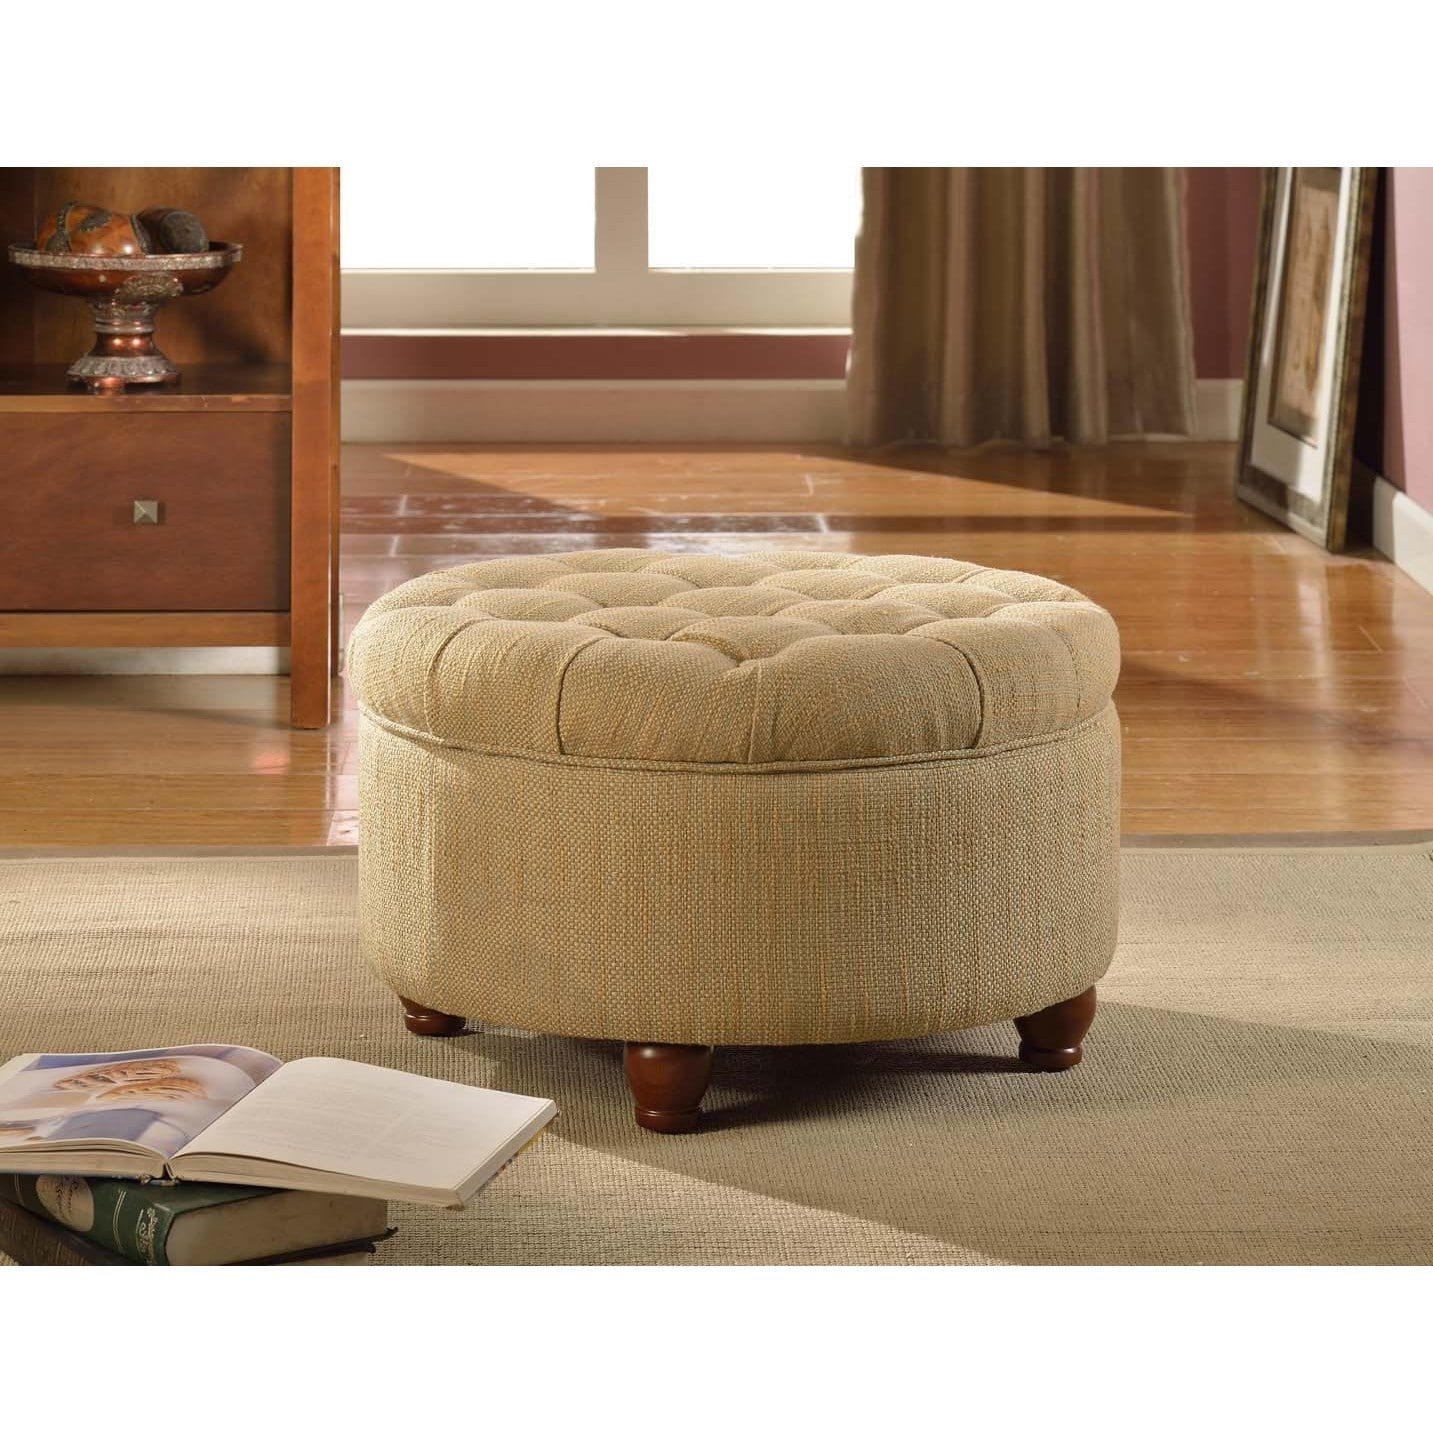 Pleasant Copper Grove Moses Tan And Cream Tweed Tufted Storage Ottoman Alphanode Cool Chair Designs And Ideas Alphanodeonline